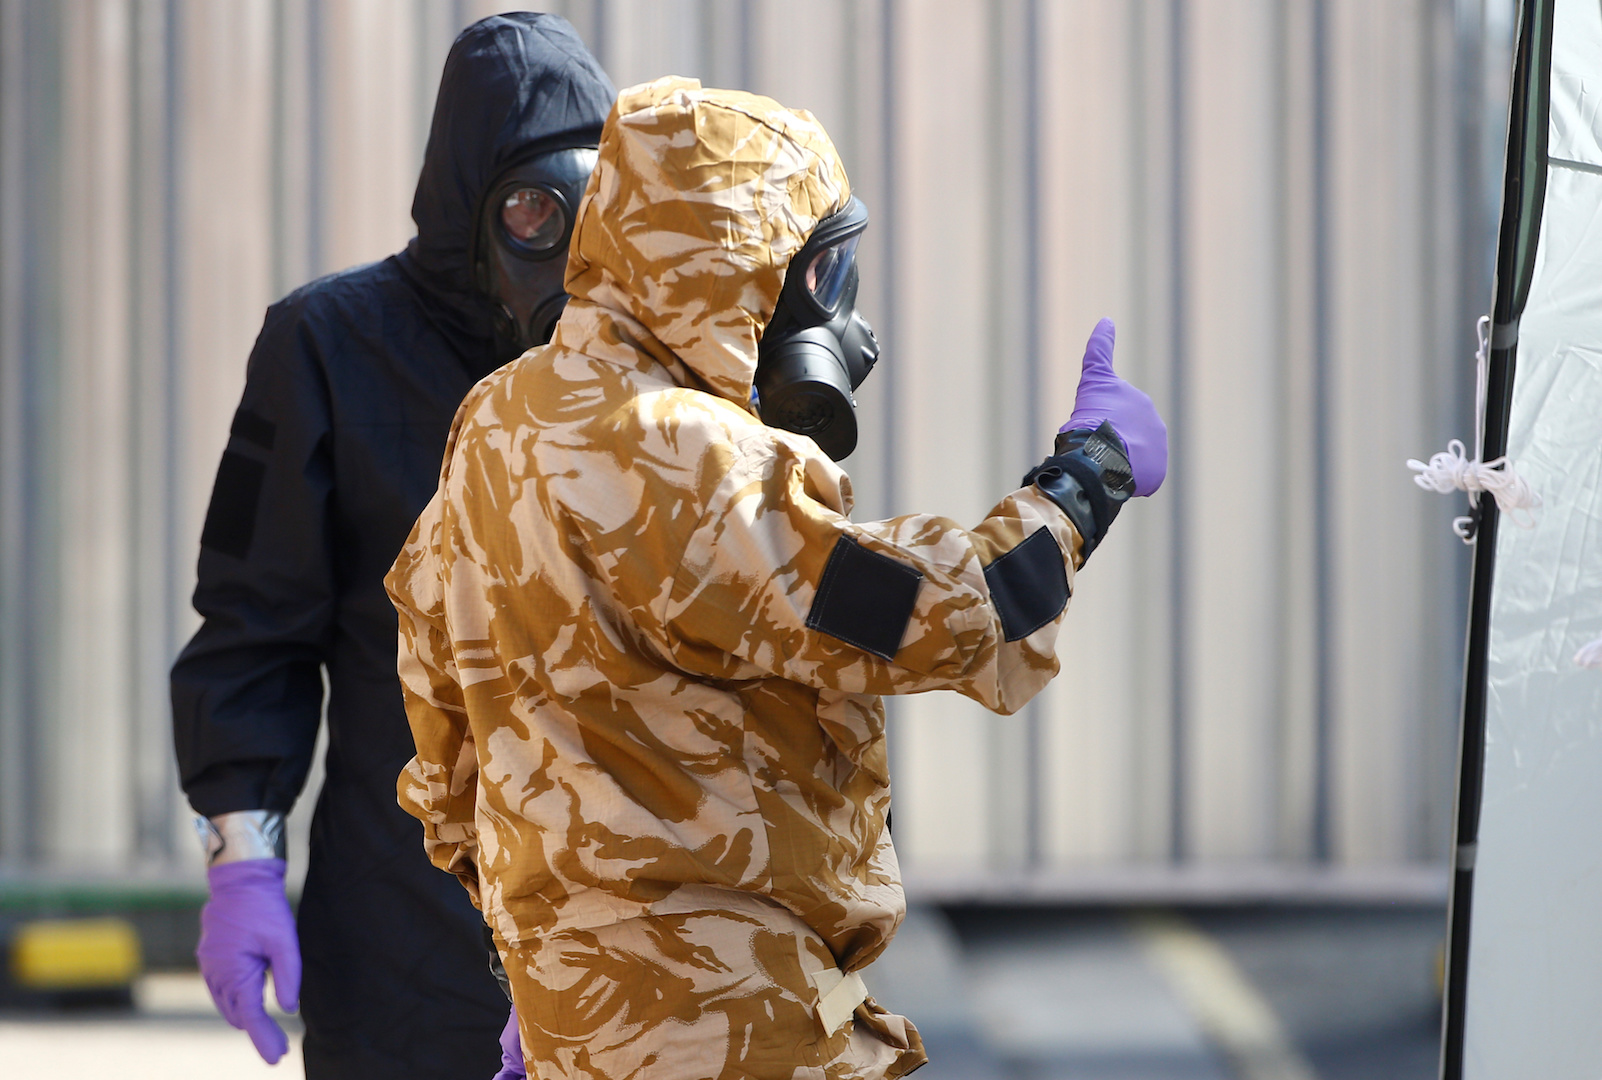 Russian spies were caught plotting to hack the lab analyzing the Salisbury Novichok samples